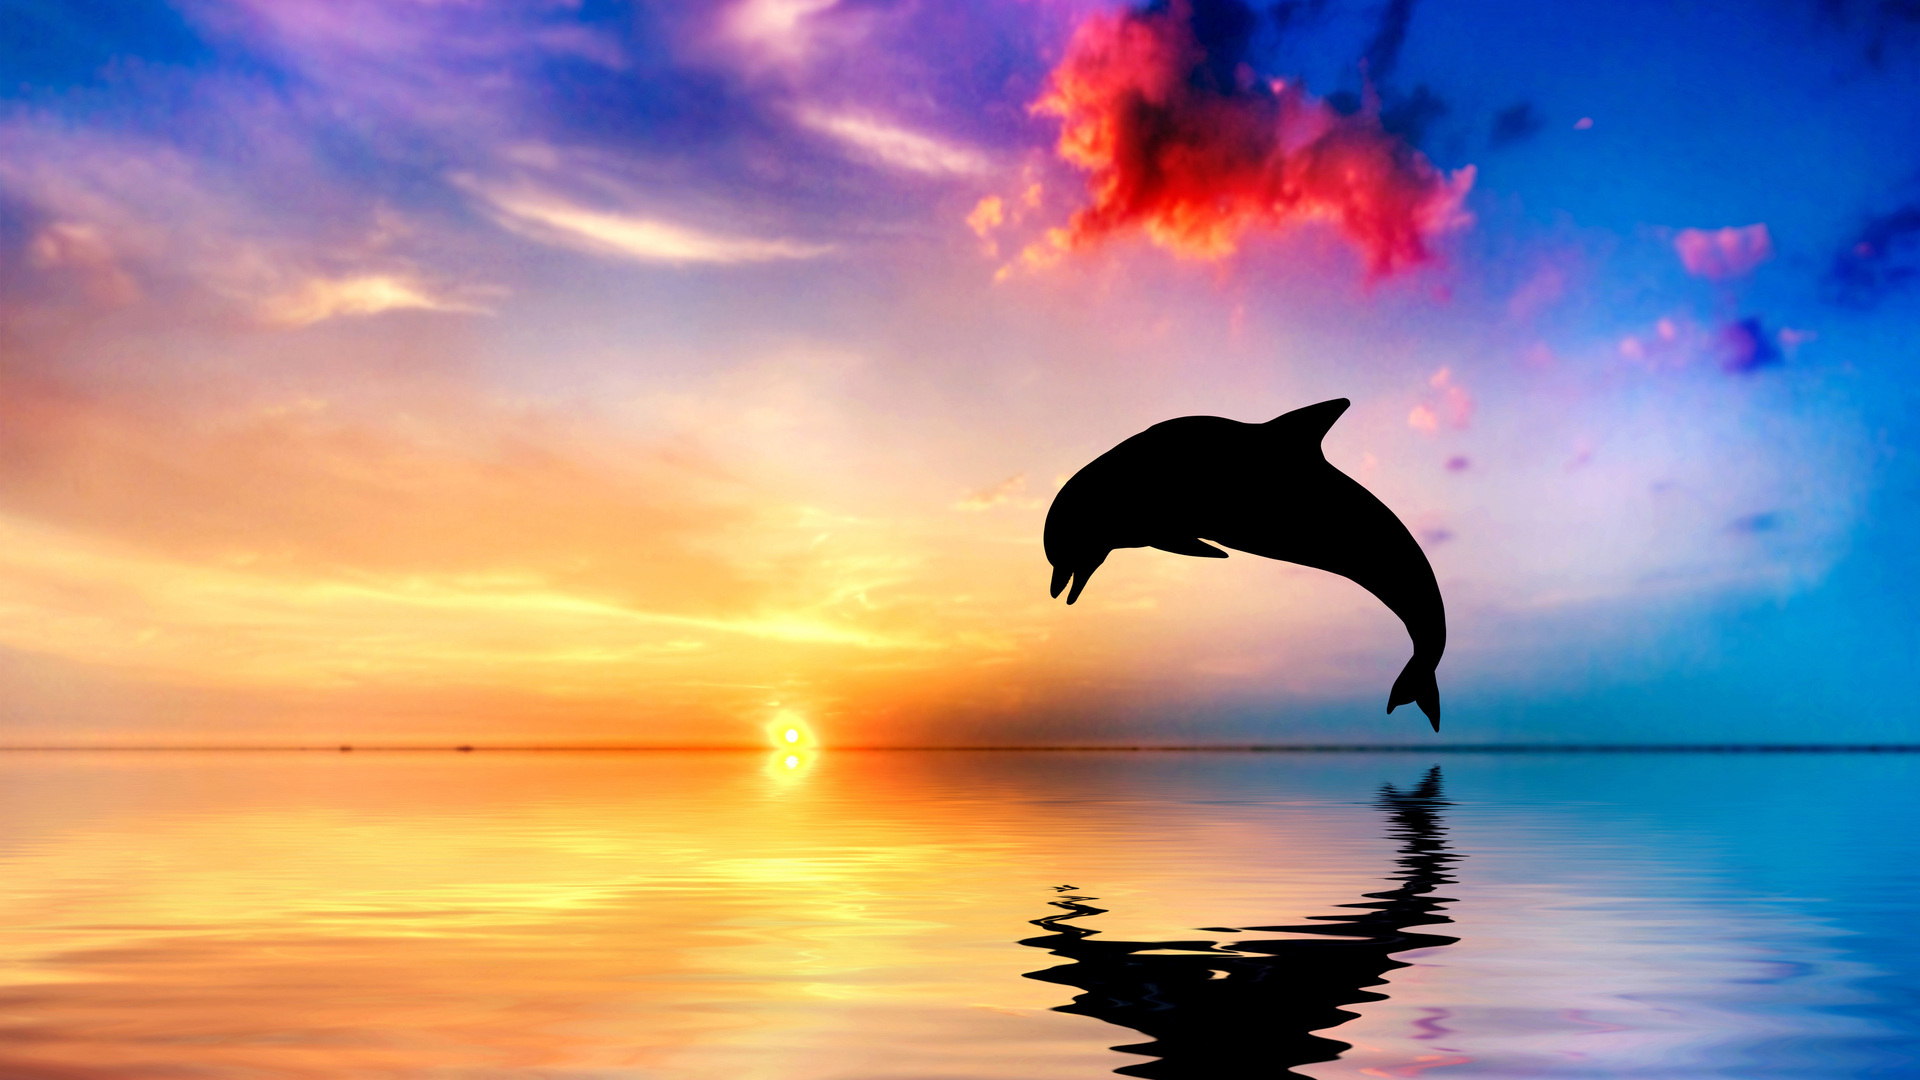 1920x1080 Dolphin Jumping Out Of Water Sunset View 4k ...